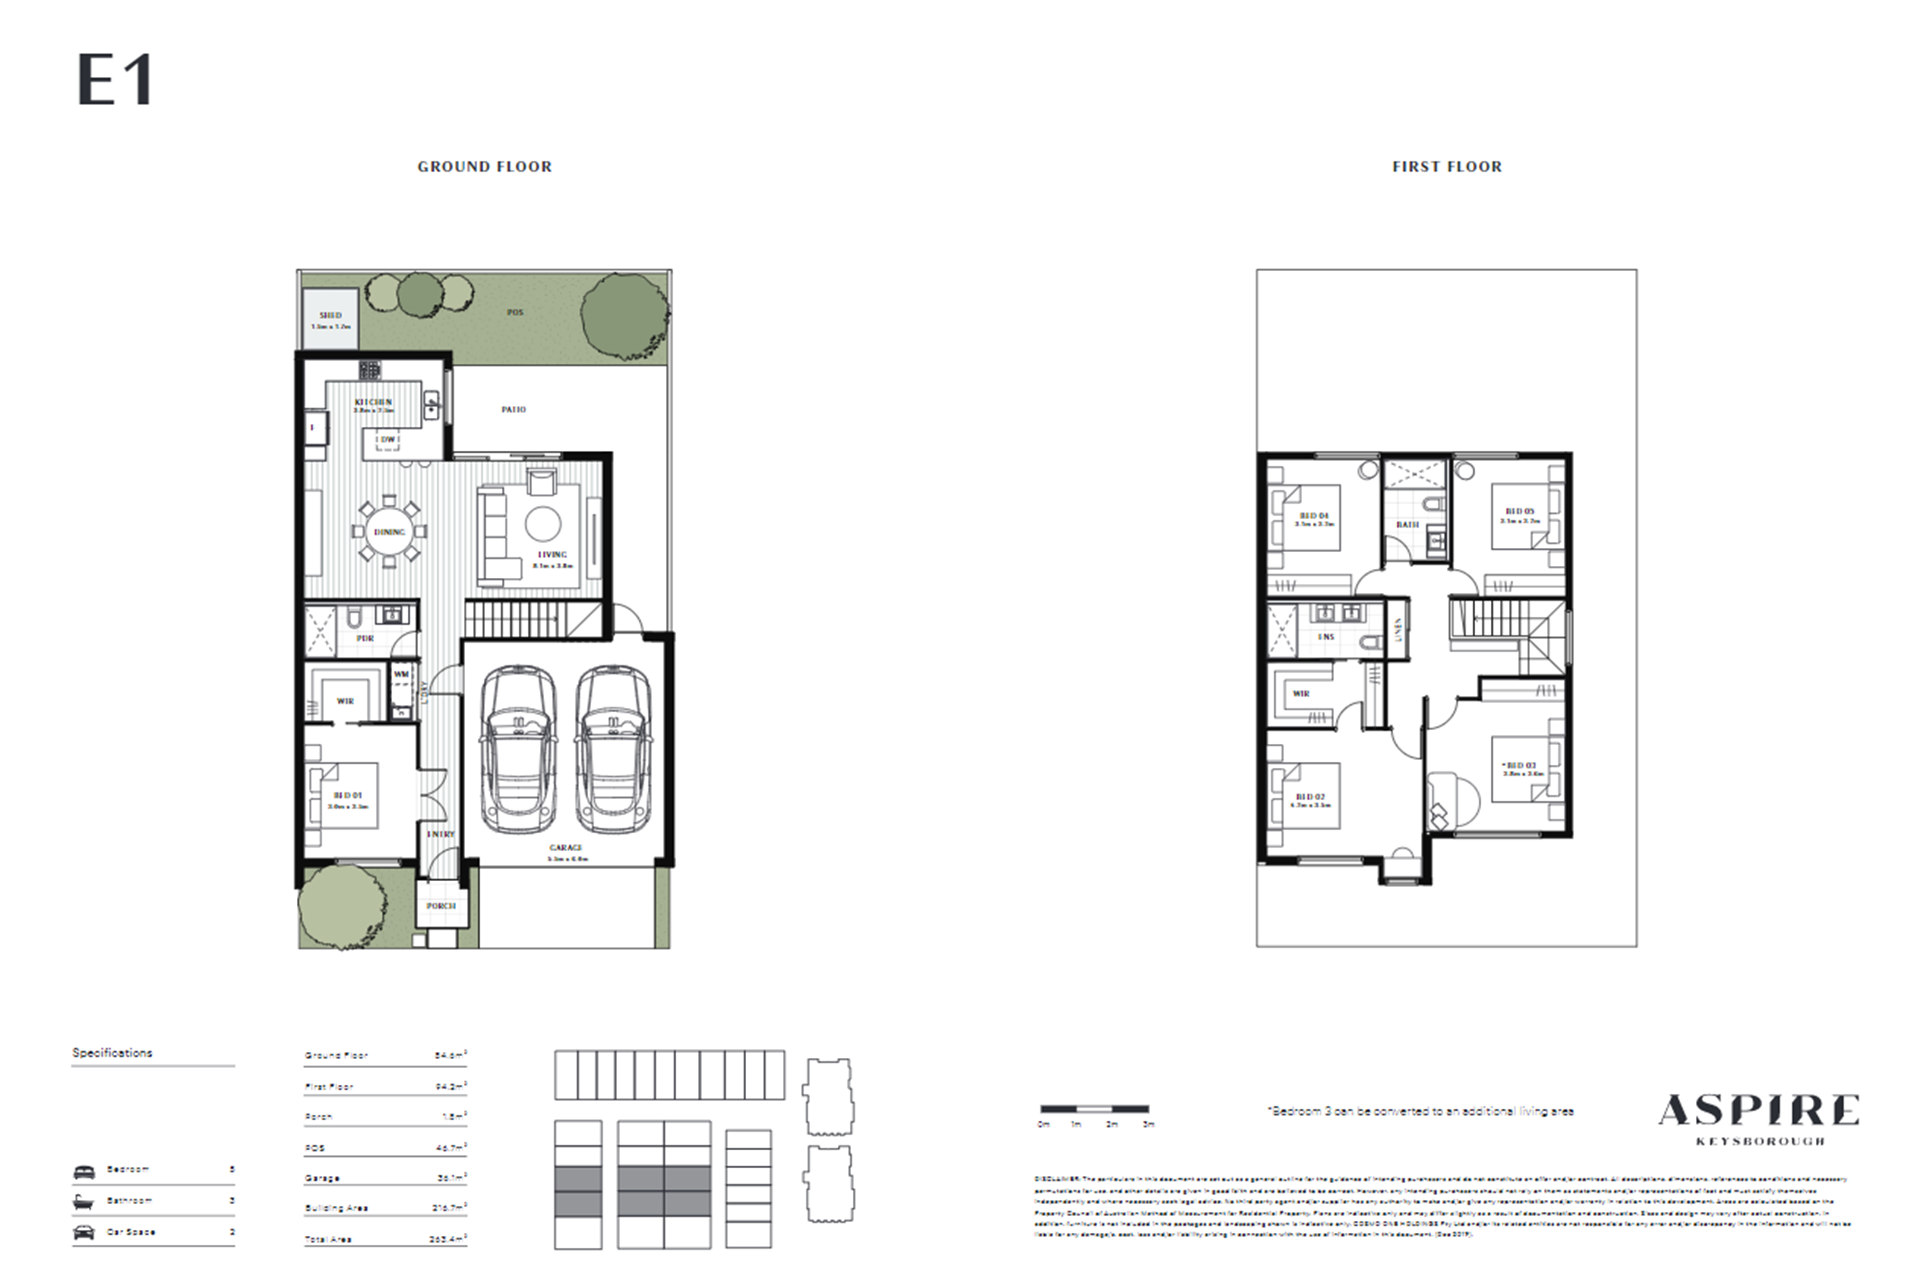 Aspire   E1 Floor Plan (Townhouse)